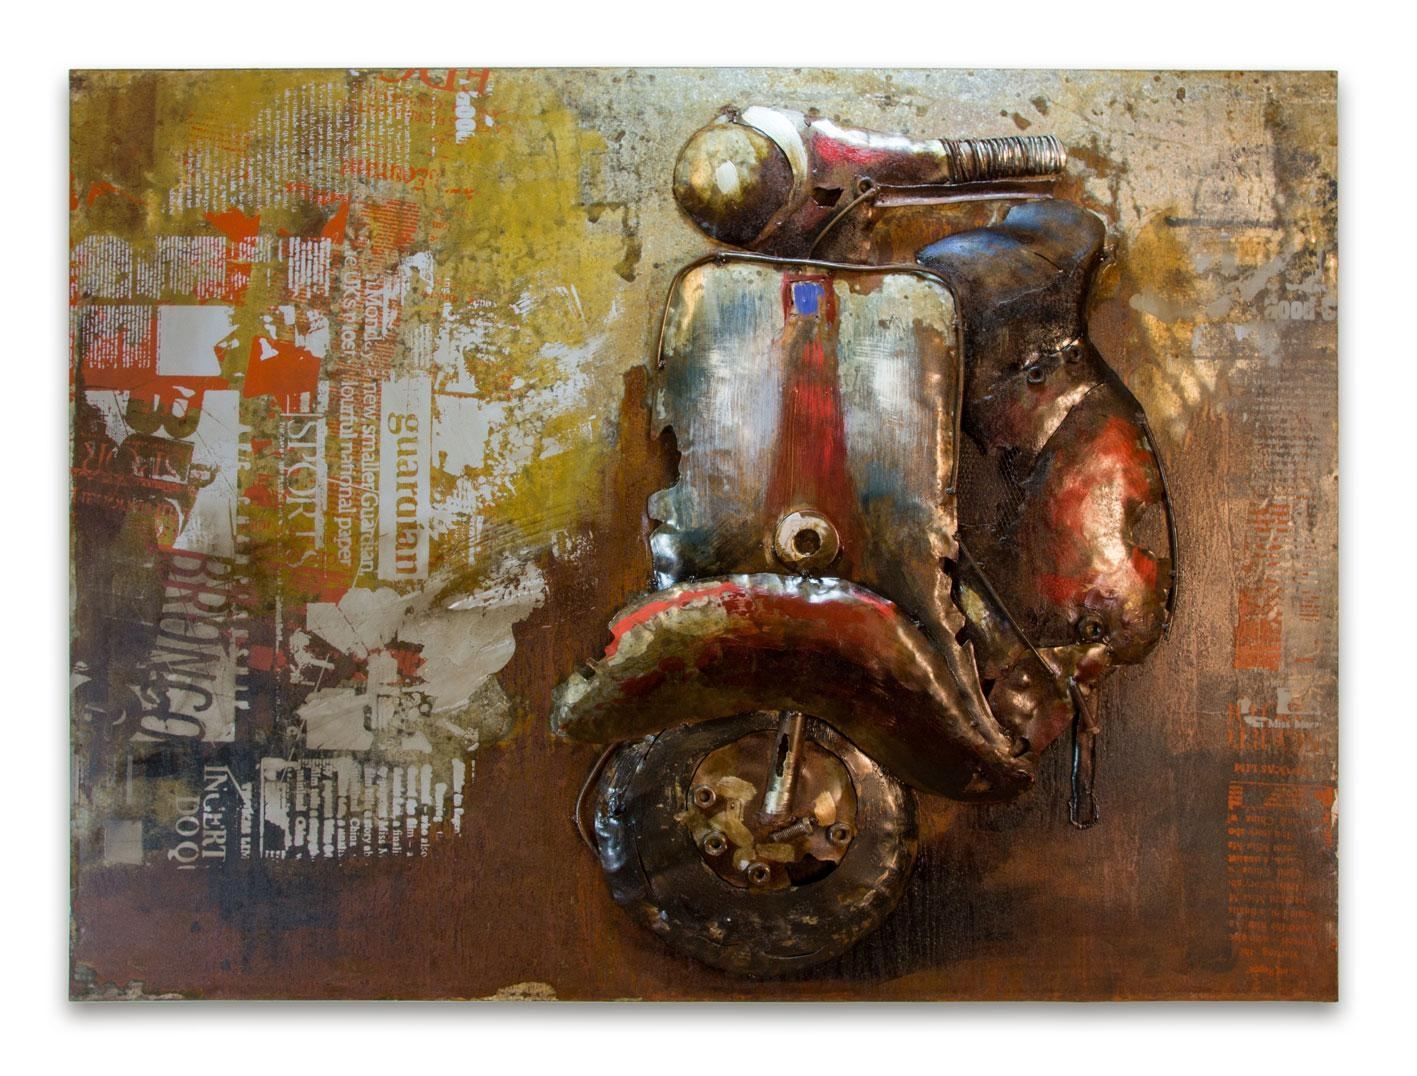 Wall Art Decor: Scooter Crafted Italian Metal Wall Art Handmade Throughout Funky Metal Wall Art (Image 17 of 20)